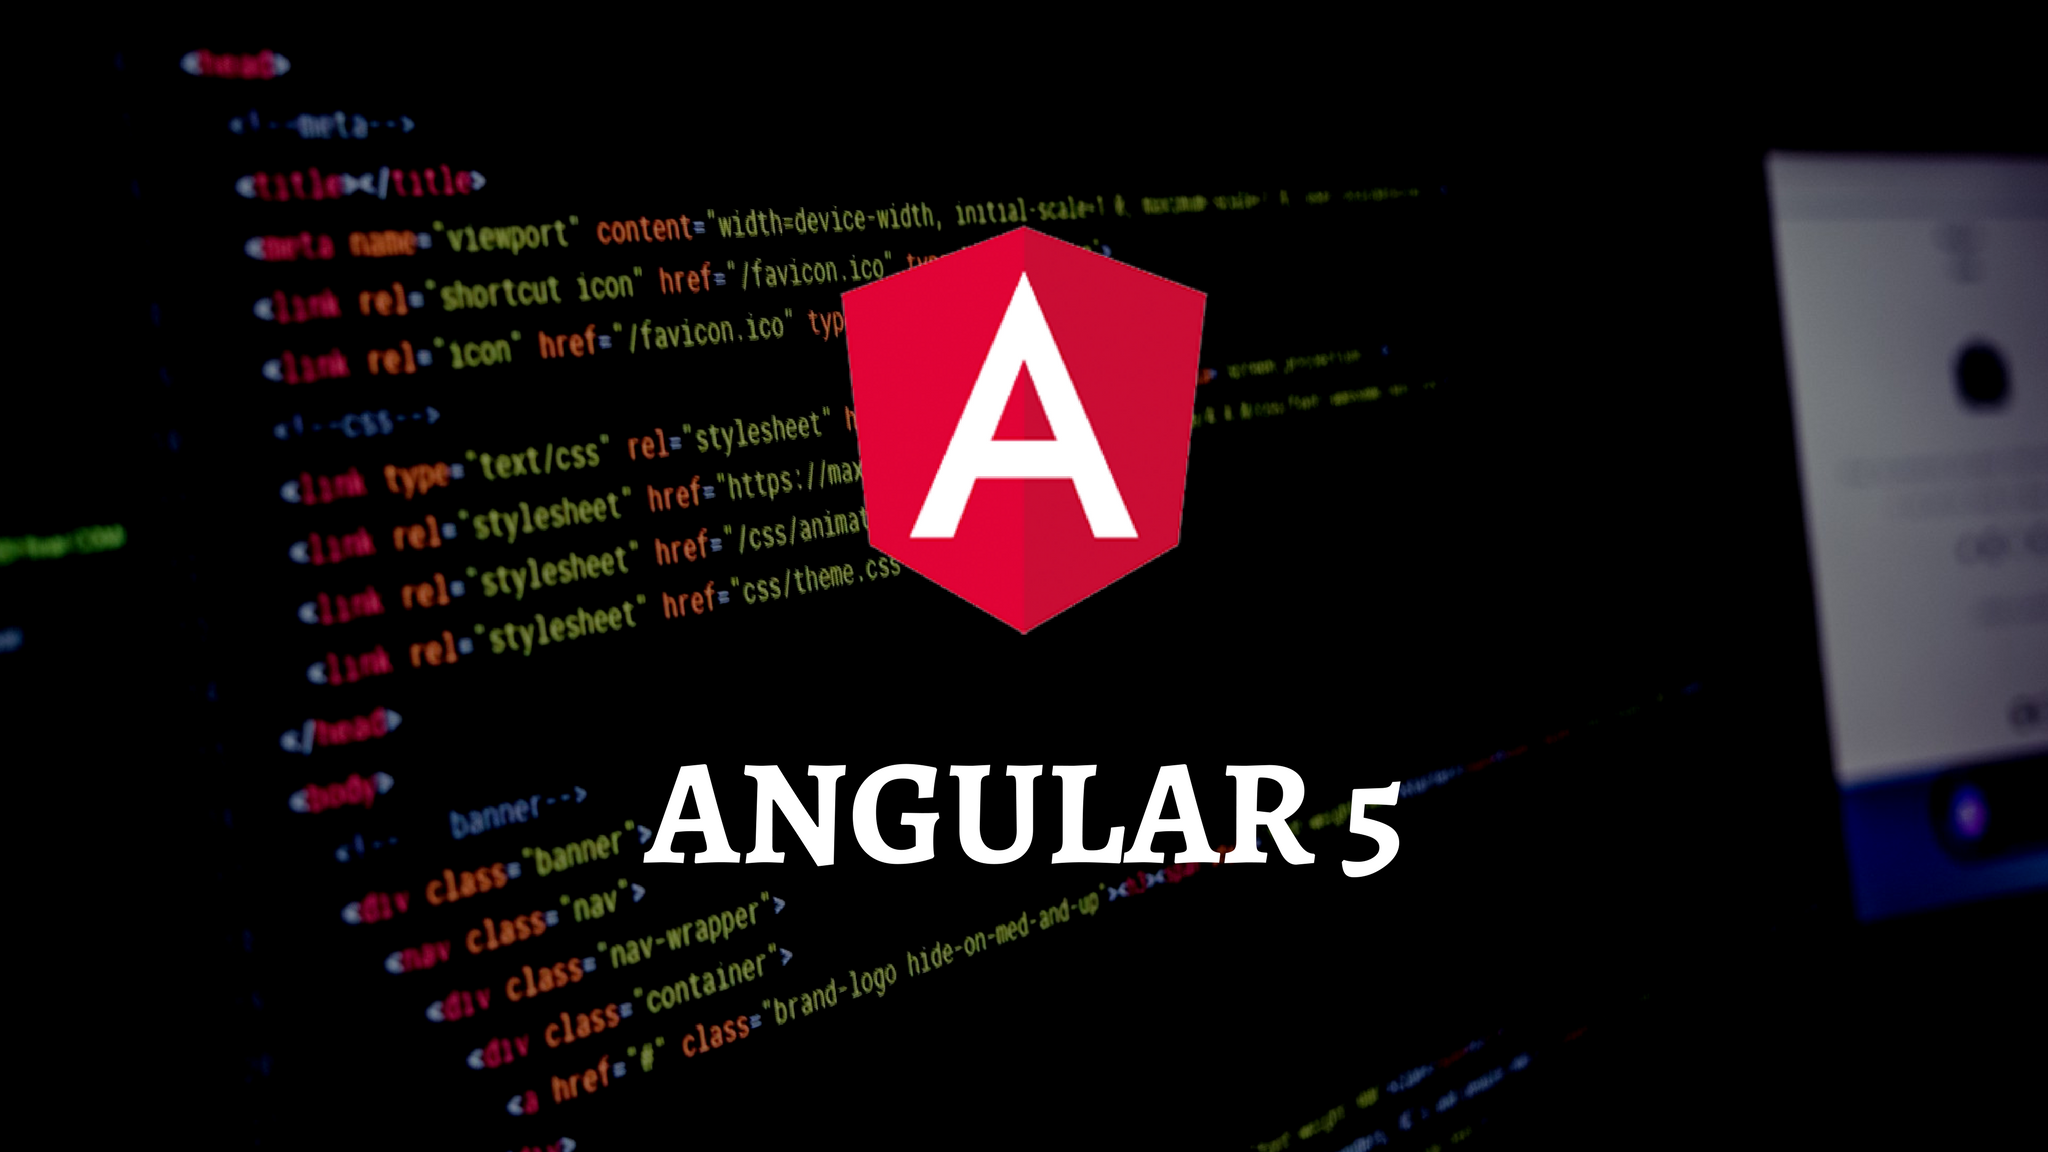 Angular 5 and jQuery DataTables ! - Apprendre le web avec Lior - Medium